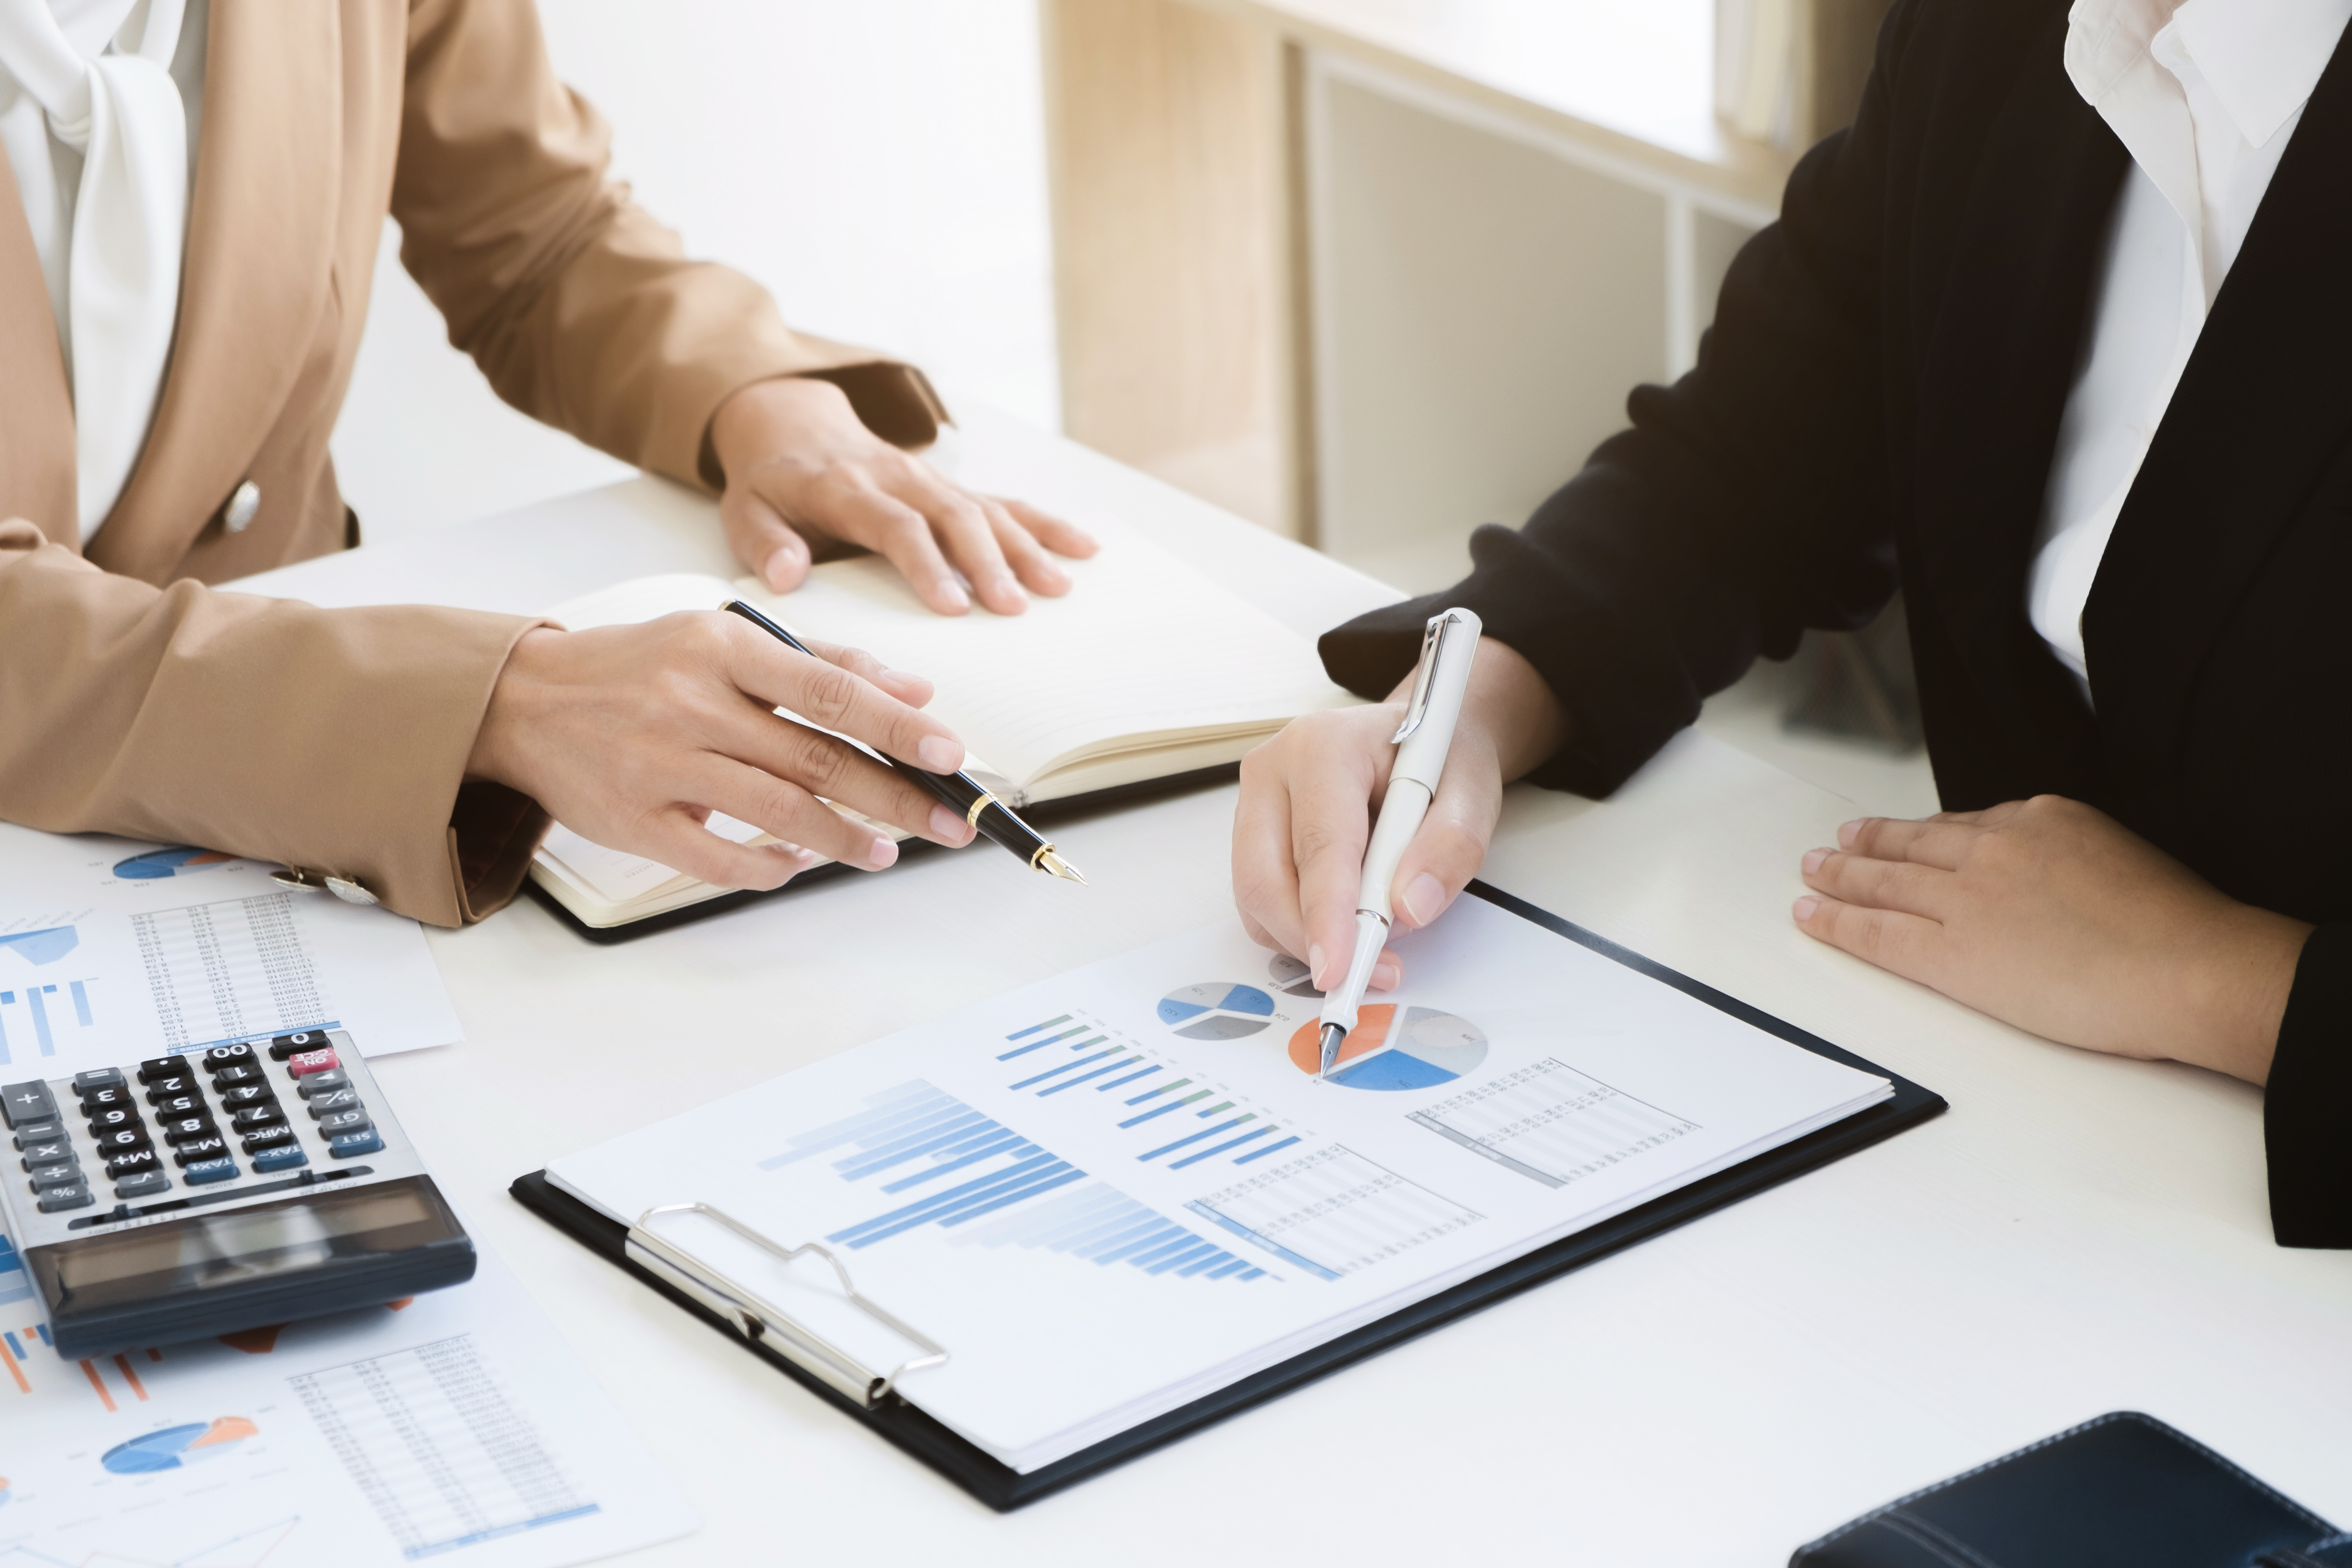 business financier audit working with calculator and data annual report